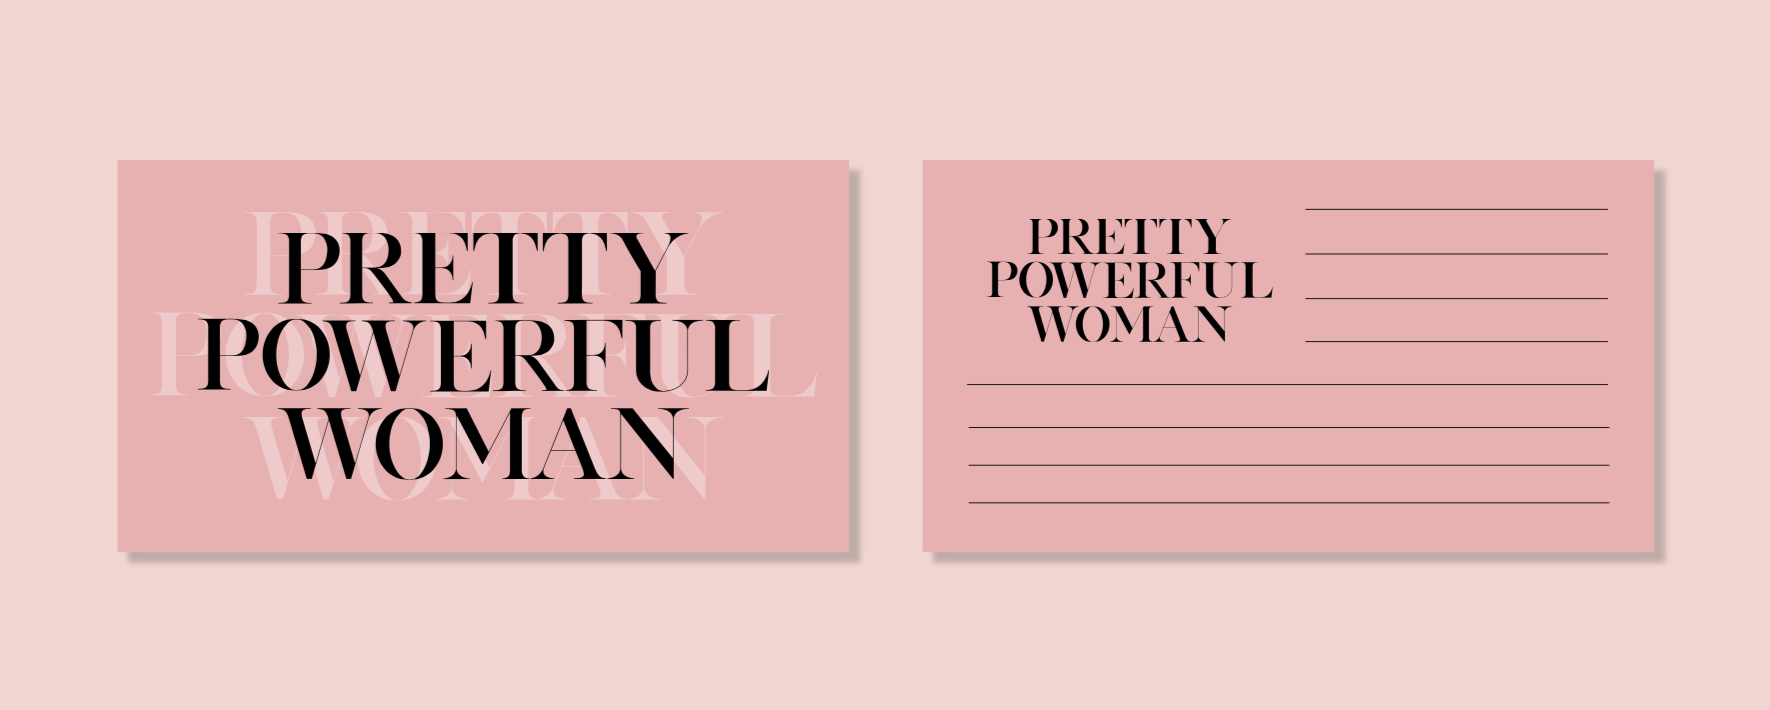 Keri Yang - Pretty Powerful Woman - KH Creative